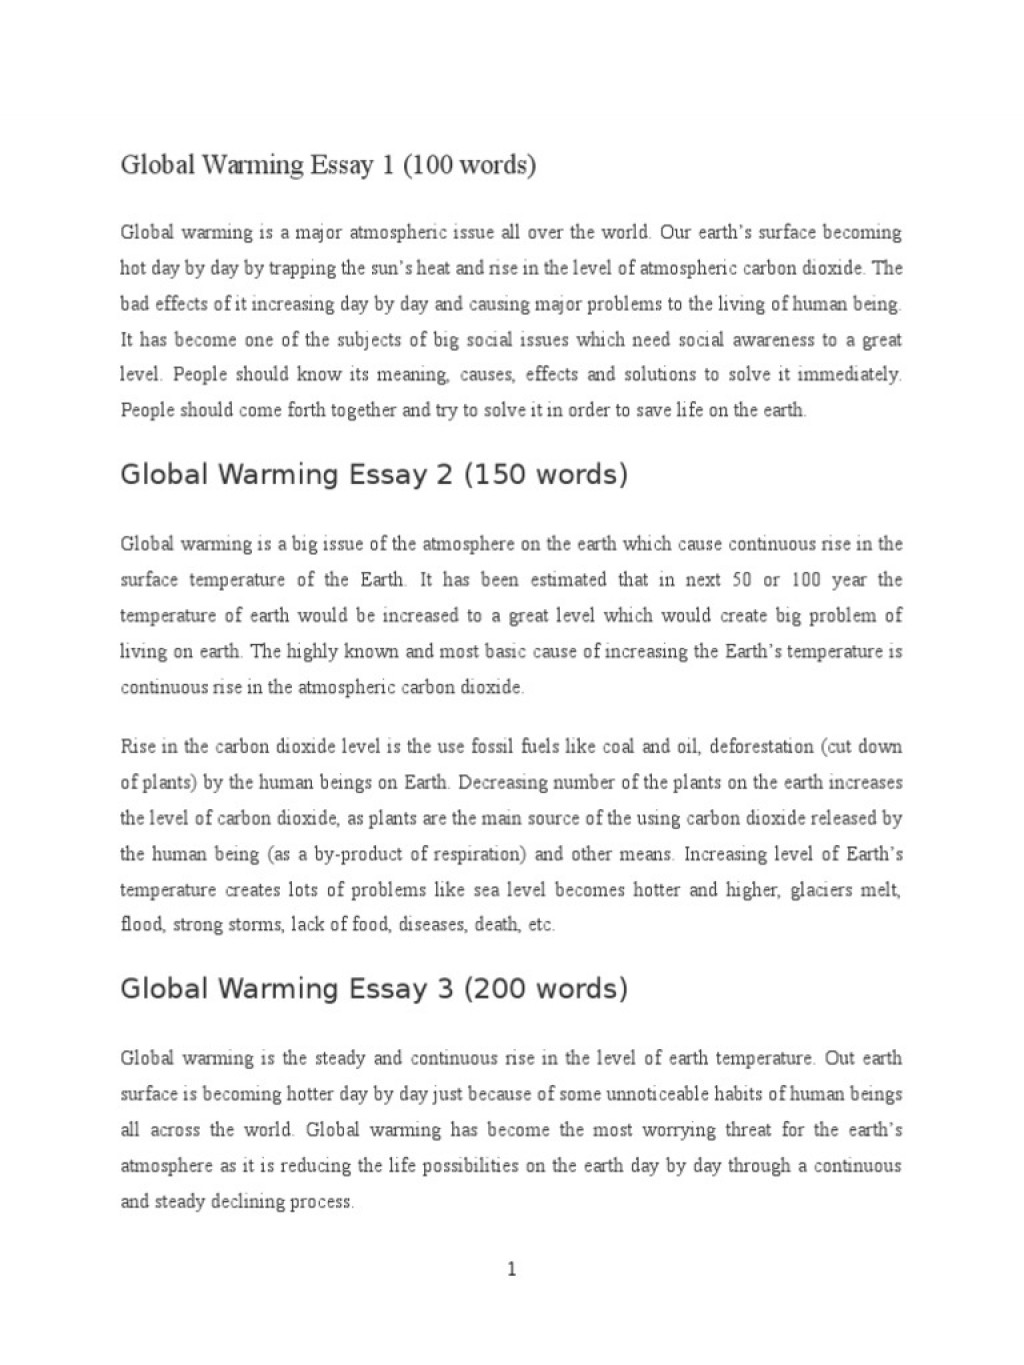 008 Global Warming Essay 1 5882e593b6d87f85288b46ba Unusual Paper Outline Catchy Titles For Ielts Band 9 Large